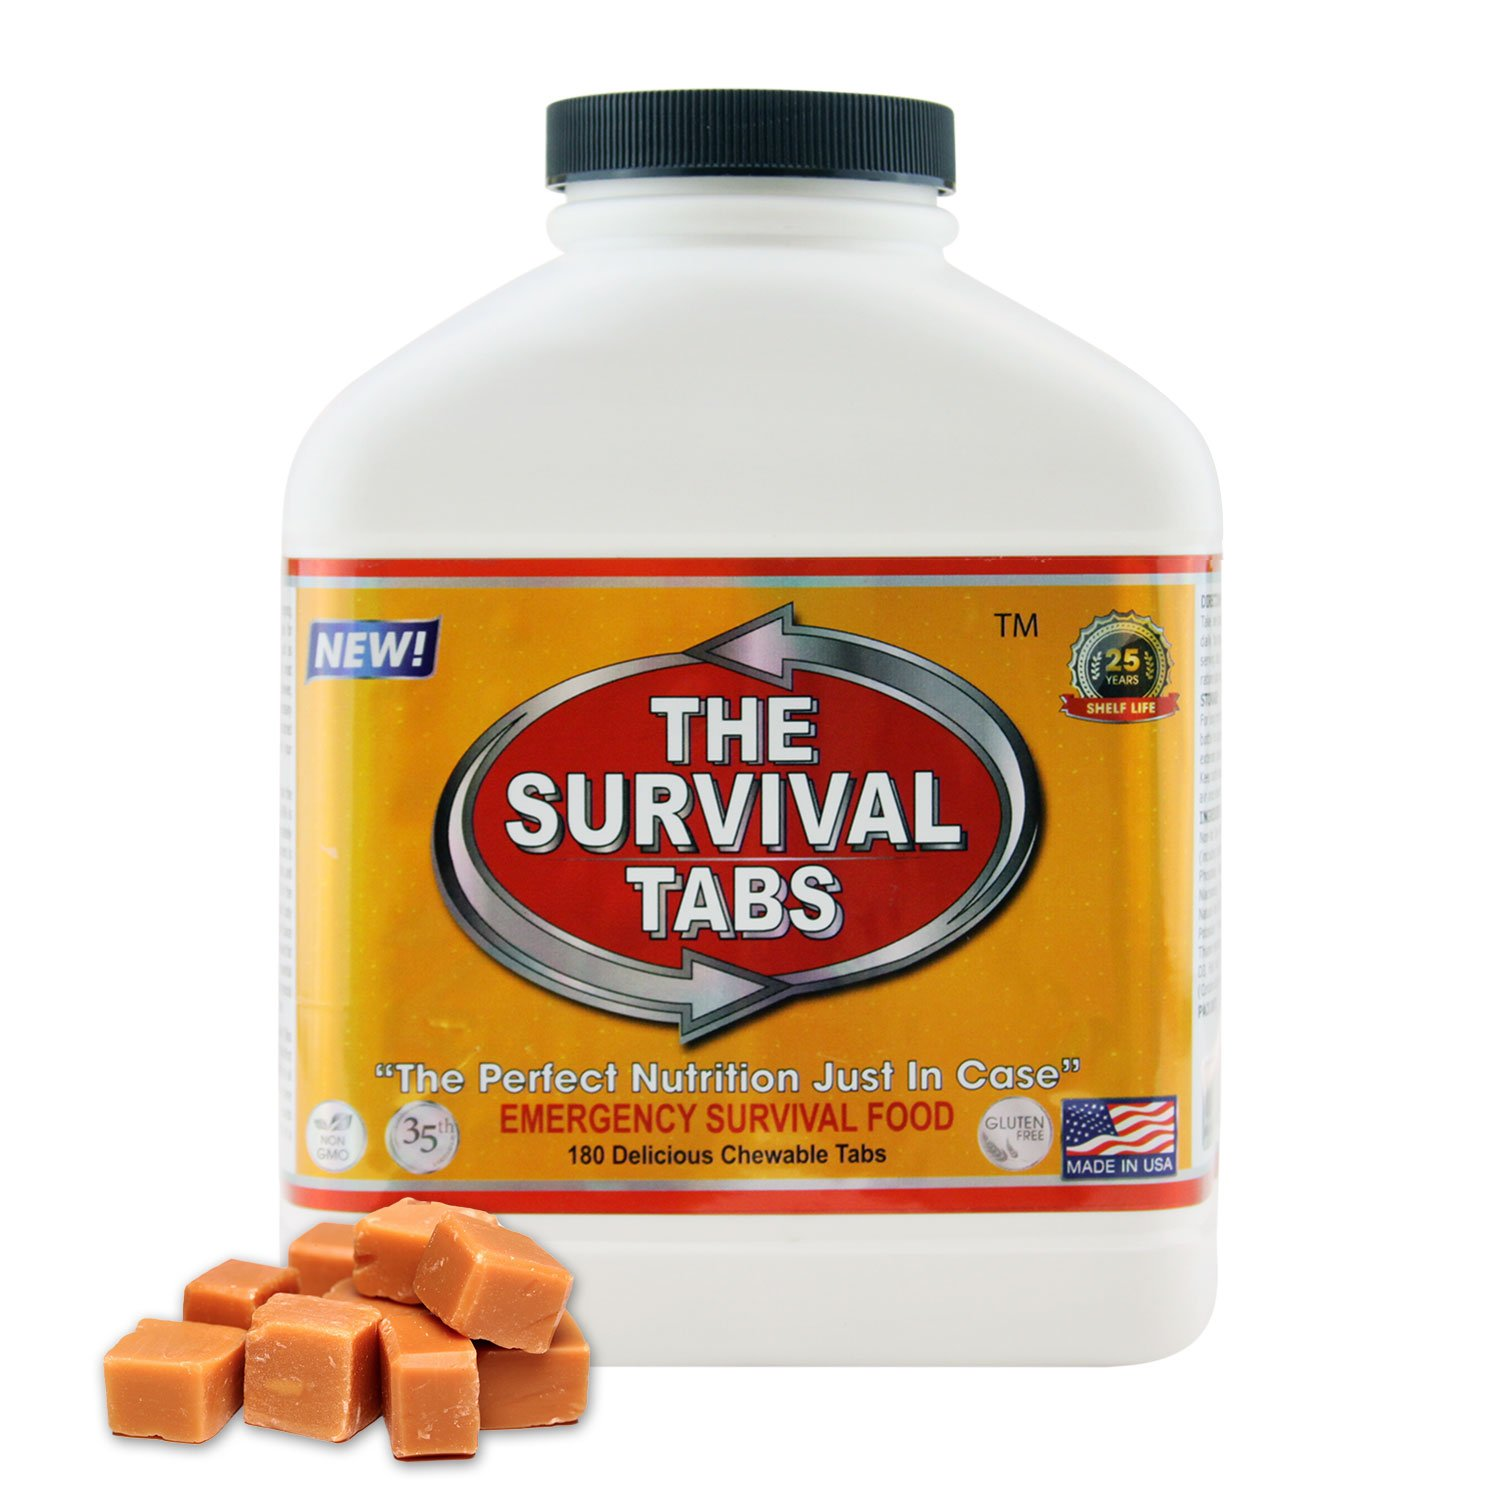 SOS Food 3600 Calorie Emergency Food Box 180 Tablets Gluten Free and Non-GMO 25 Years Shelf Life - Chocolate Flavor by The Survival Tabs